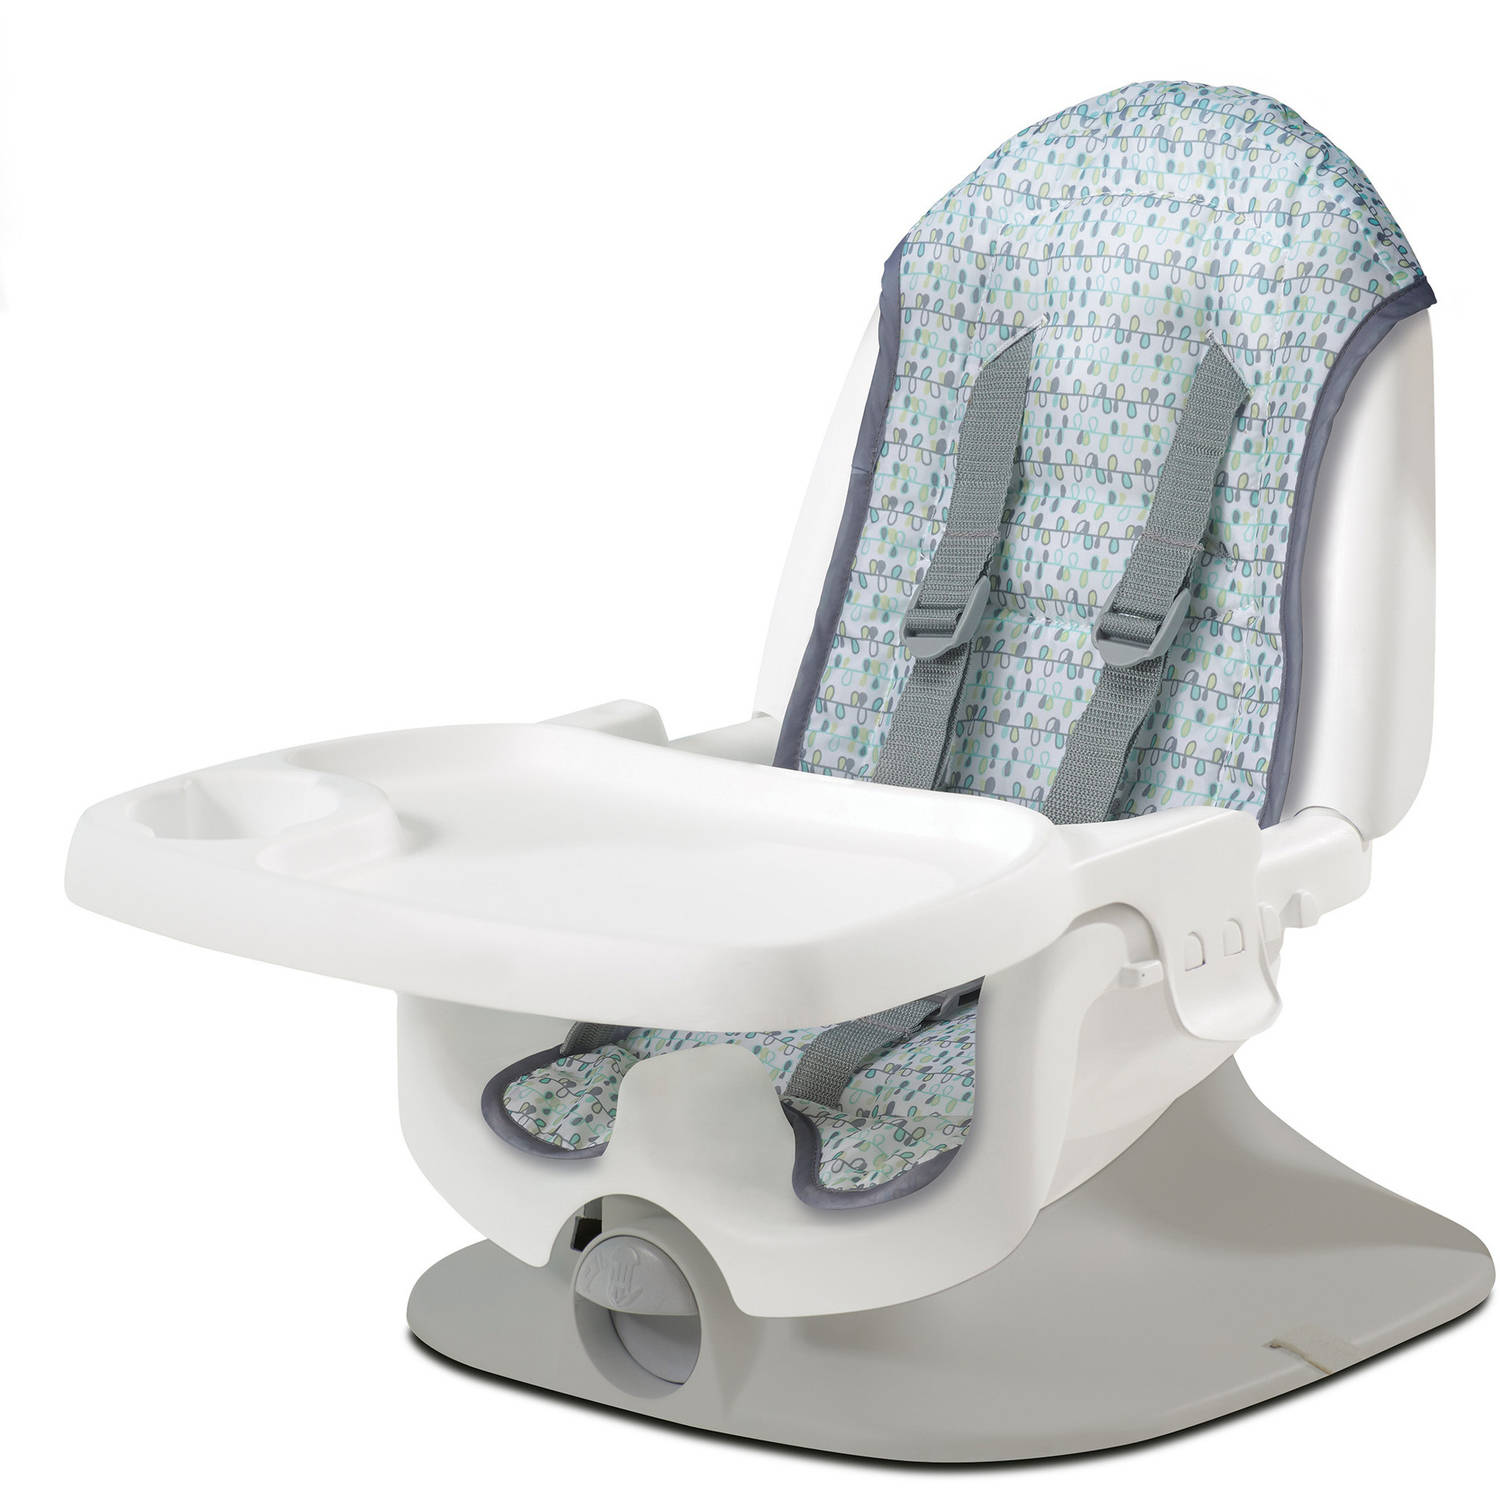 The First Years Deluxe Diner Reclining Feeding Seat